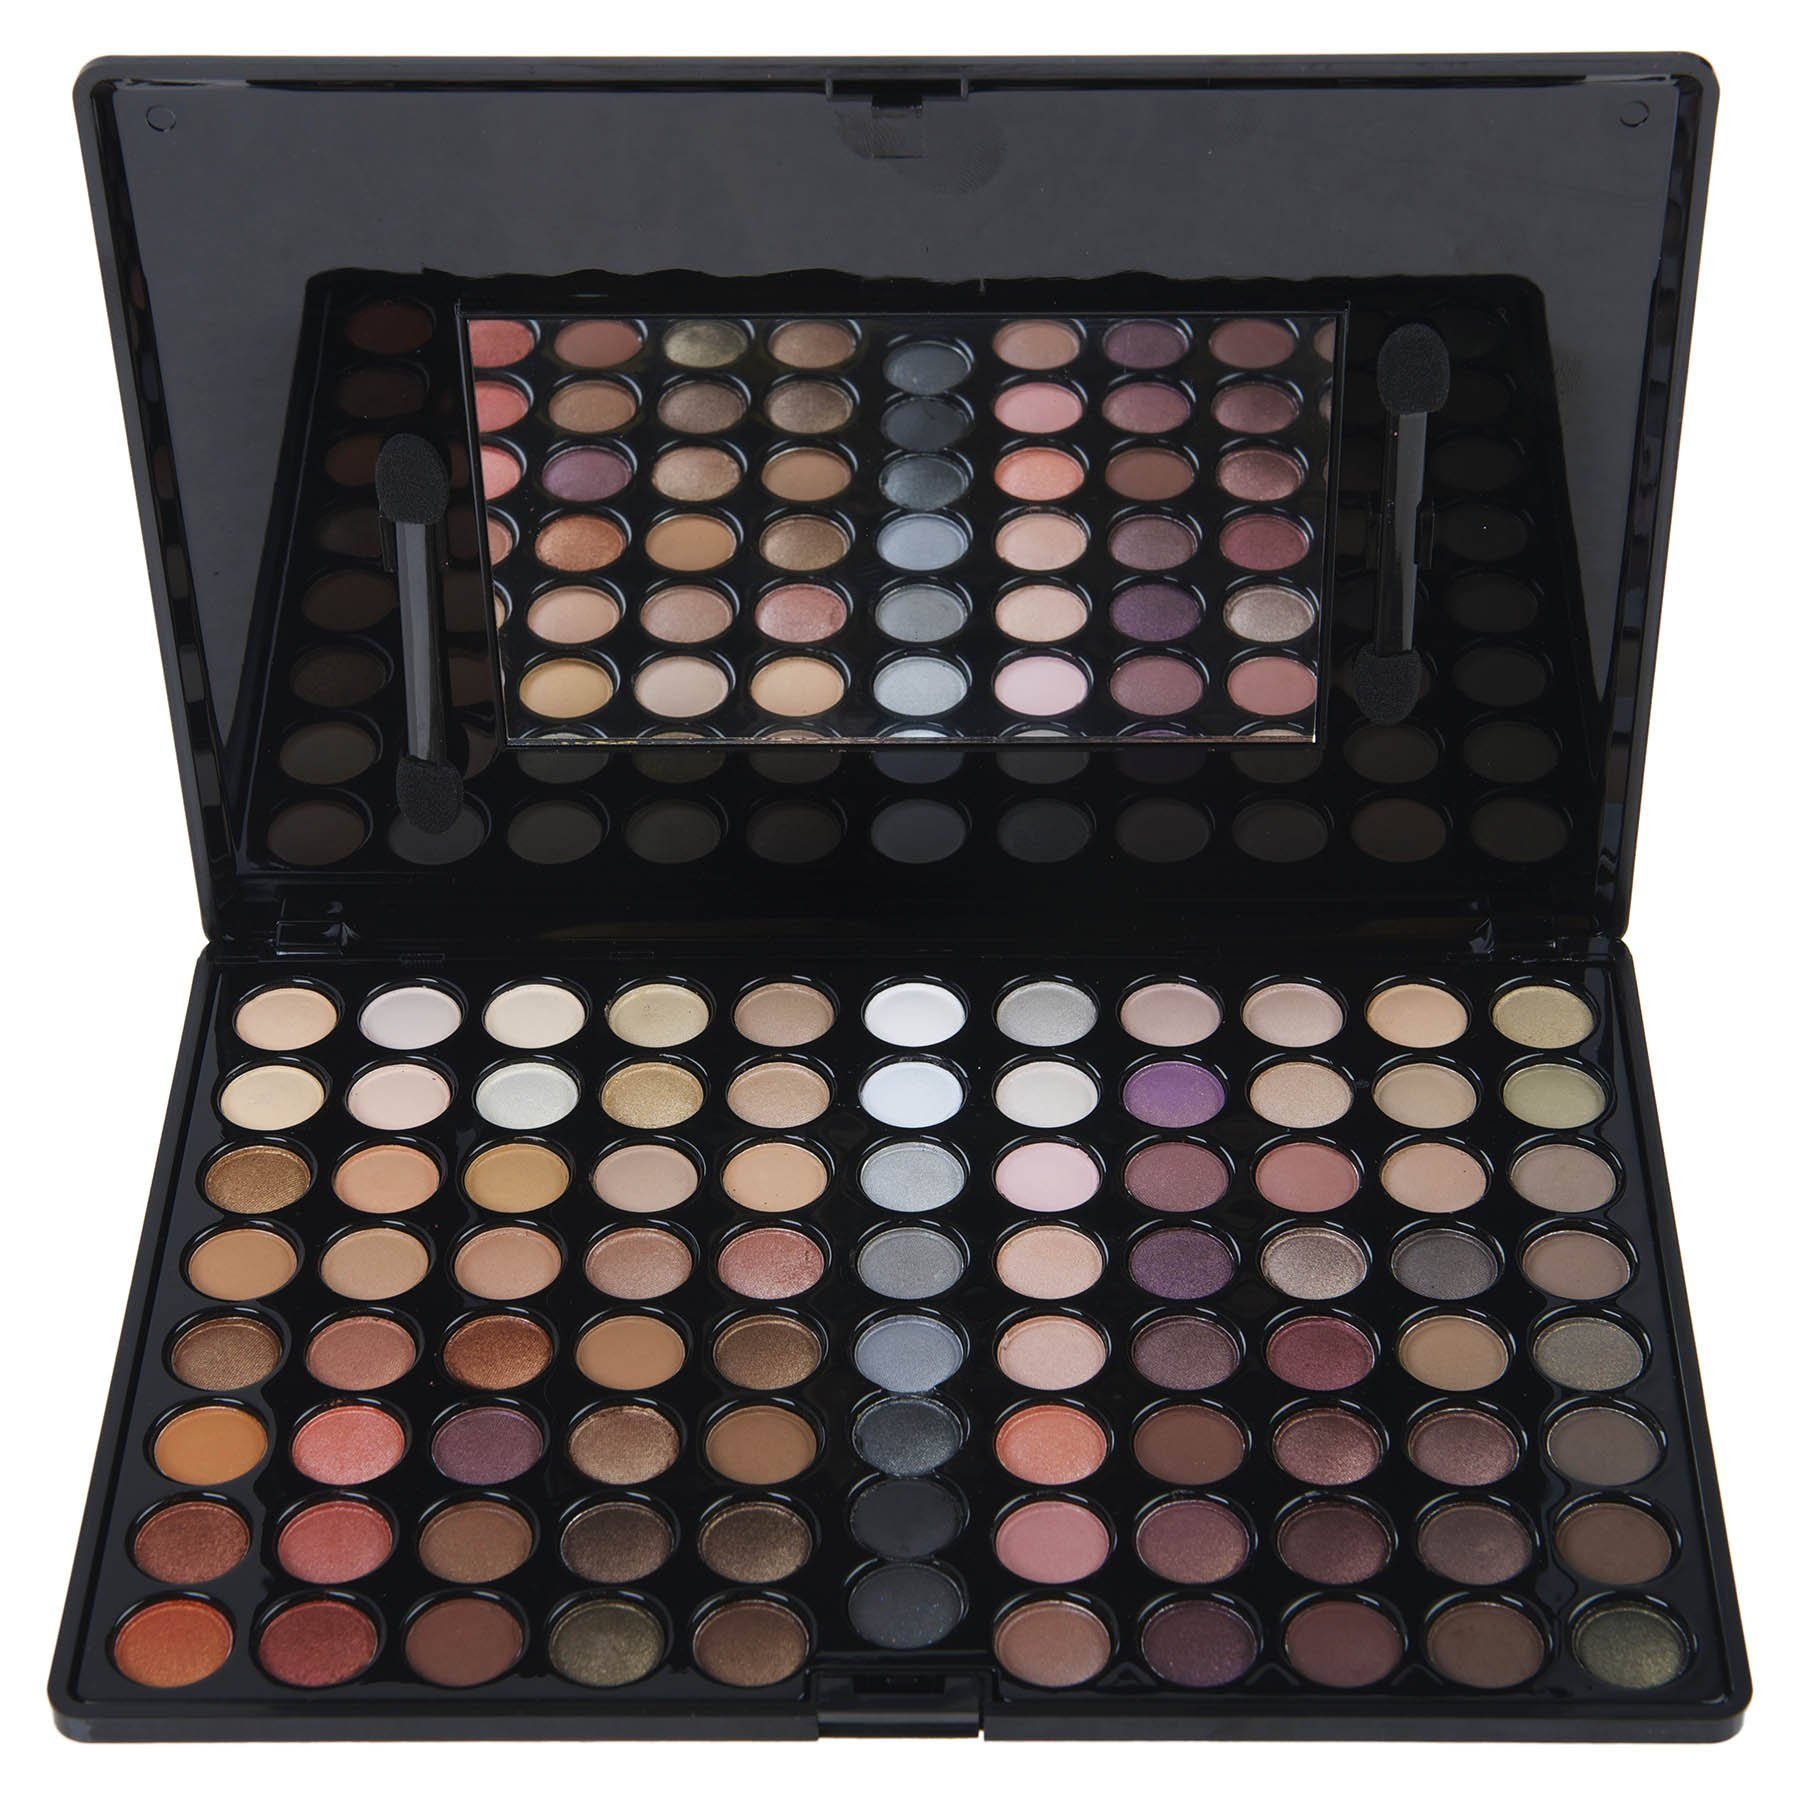 SHANY Natural Fusion Eyeshadow Palette (88 Color Eyeshadow Palette, Nude Palette), 2.15 Ounce by SHANY Cosmetics (Image #6)